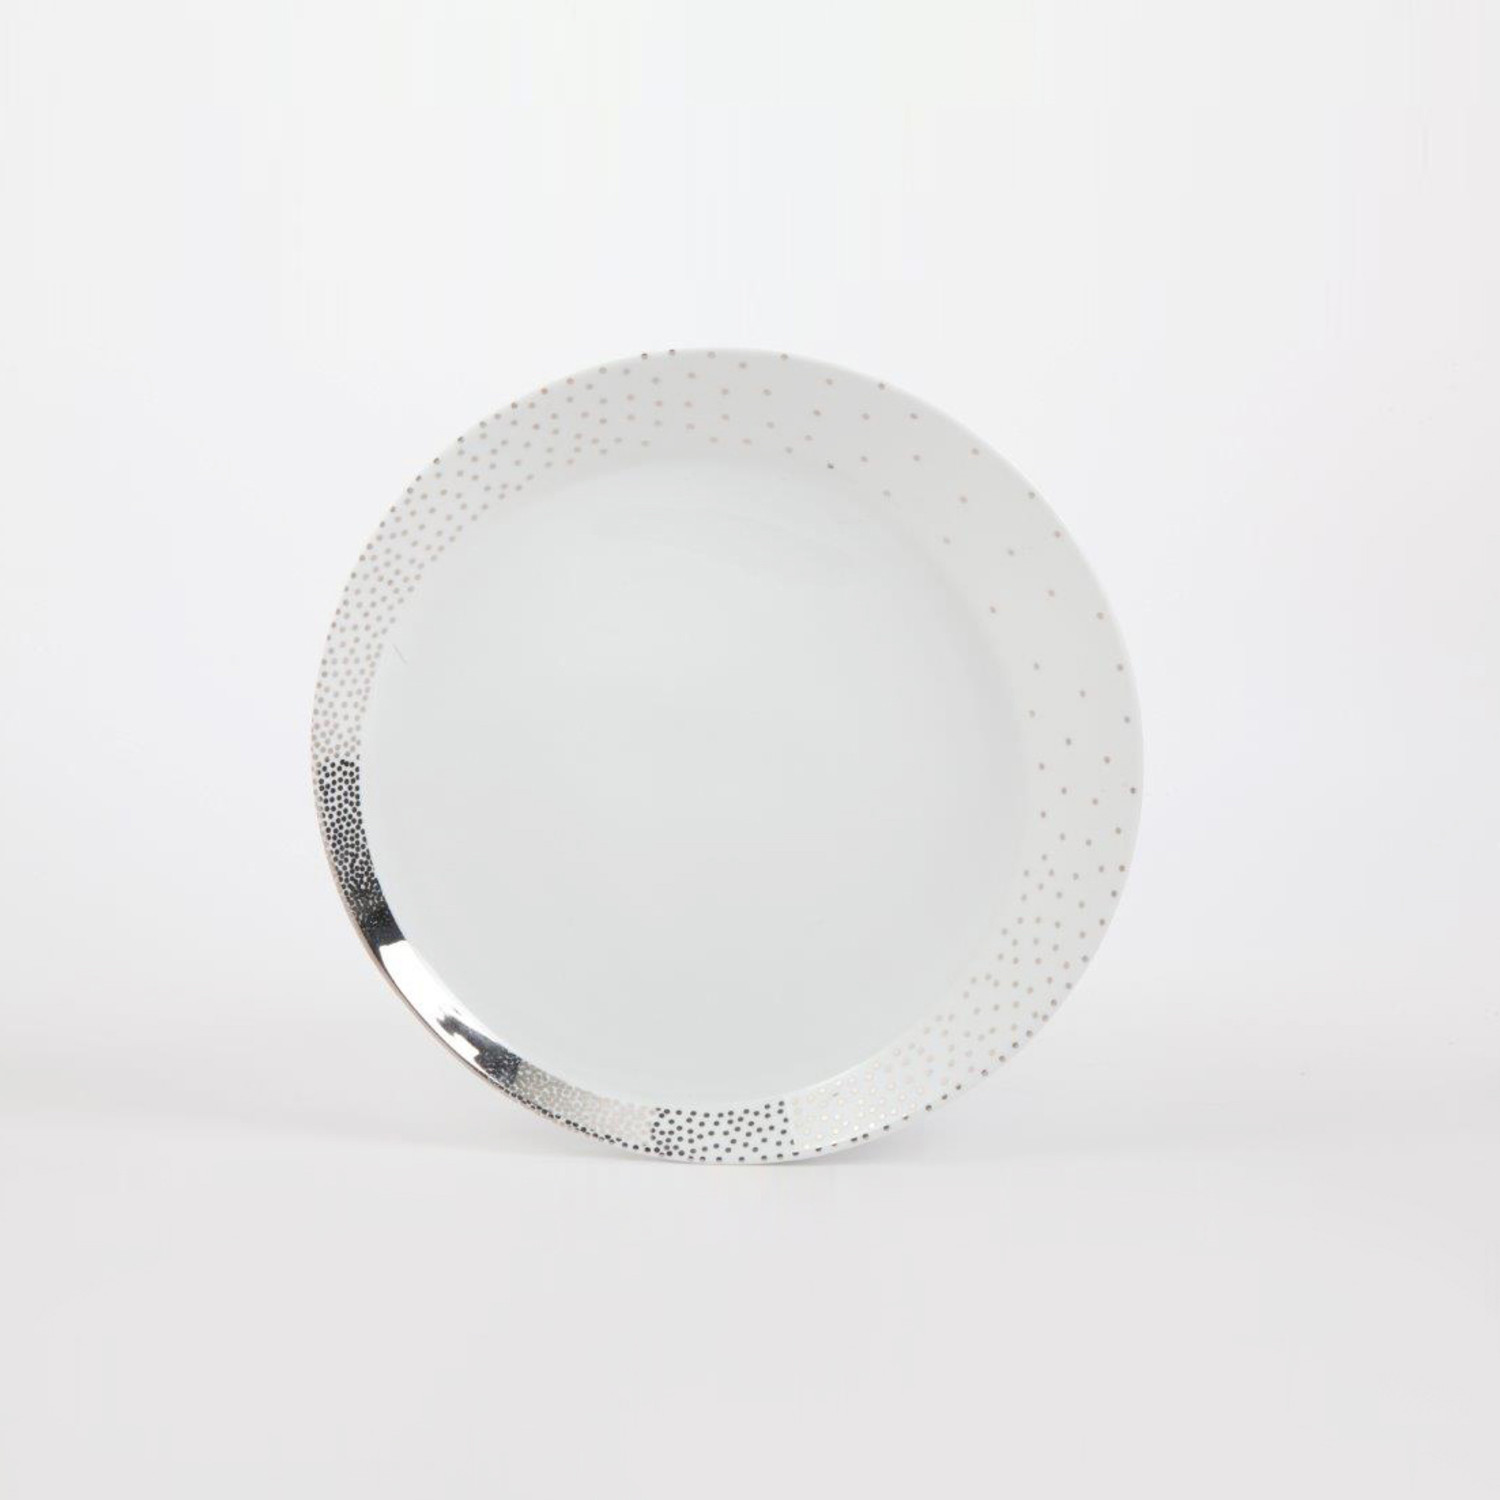 Nambé Tilt Dazzle Dinner Plate // 4pc Set & Nambé Tilt Dazzle Dinner Plate // 4pc Set - Nambé Dinnerware - Touch ...